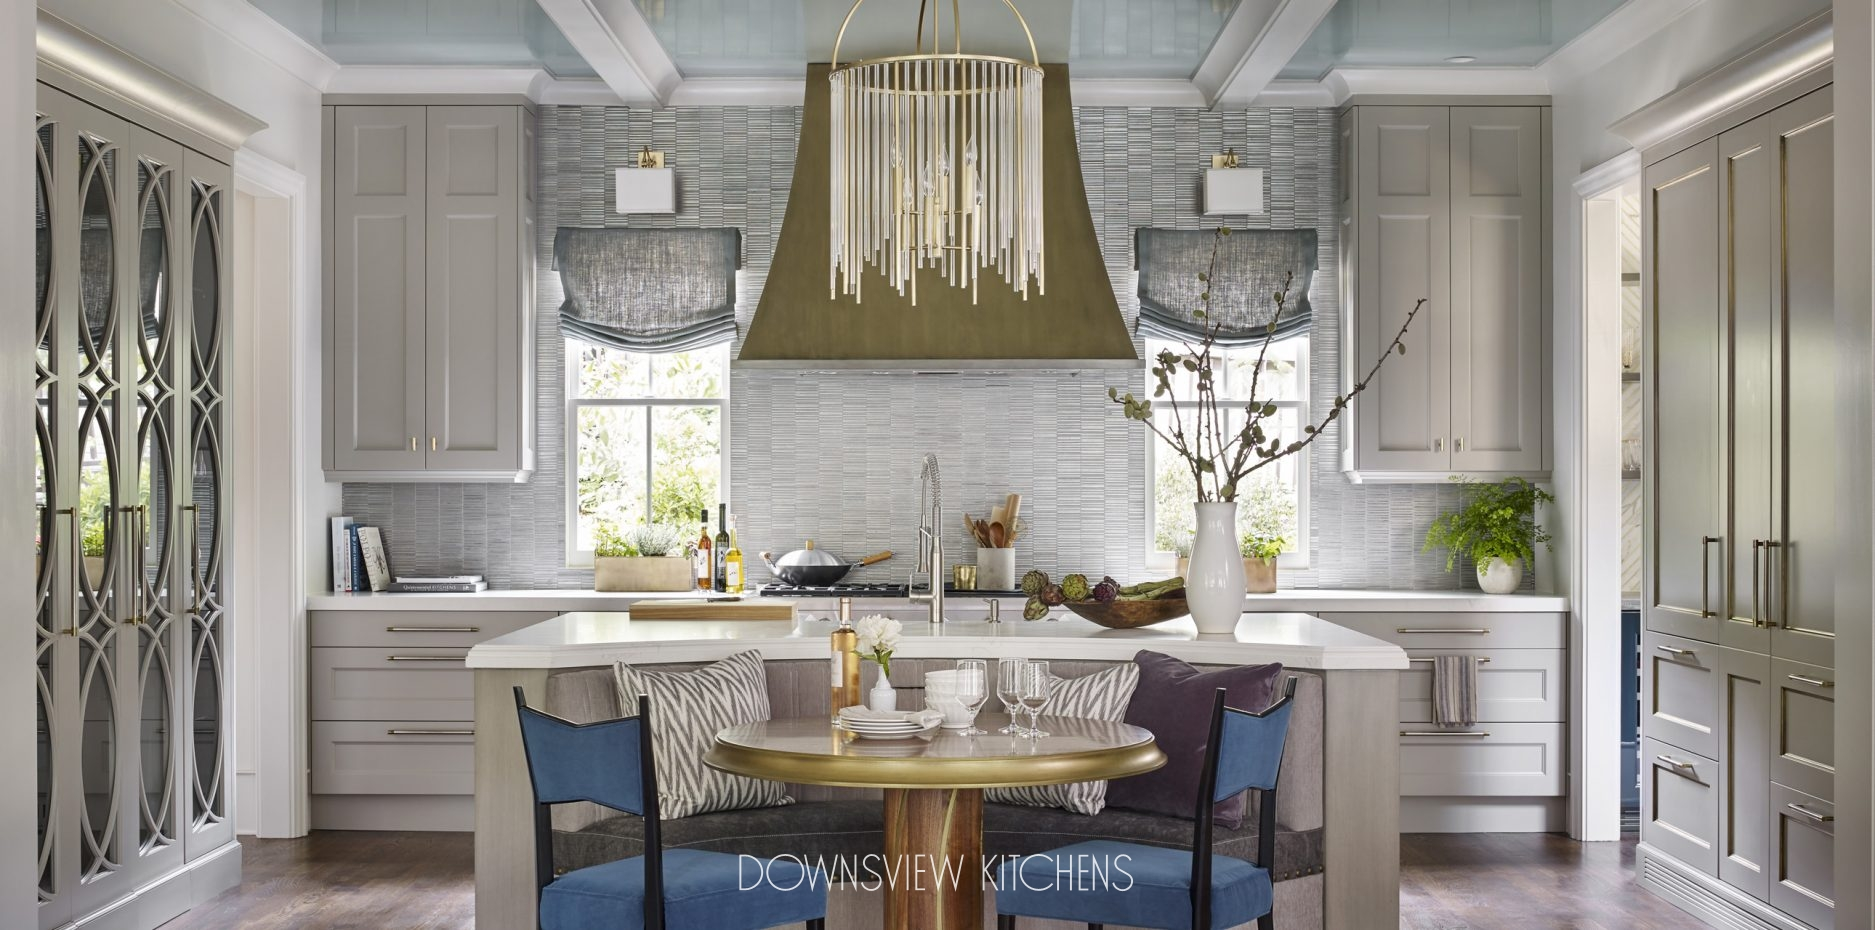 Artful Mix Downsview Kitchens And Fine Custom Cabinetry Manufacturers Of Custom Kitchen Cabinets